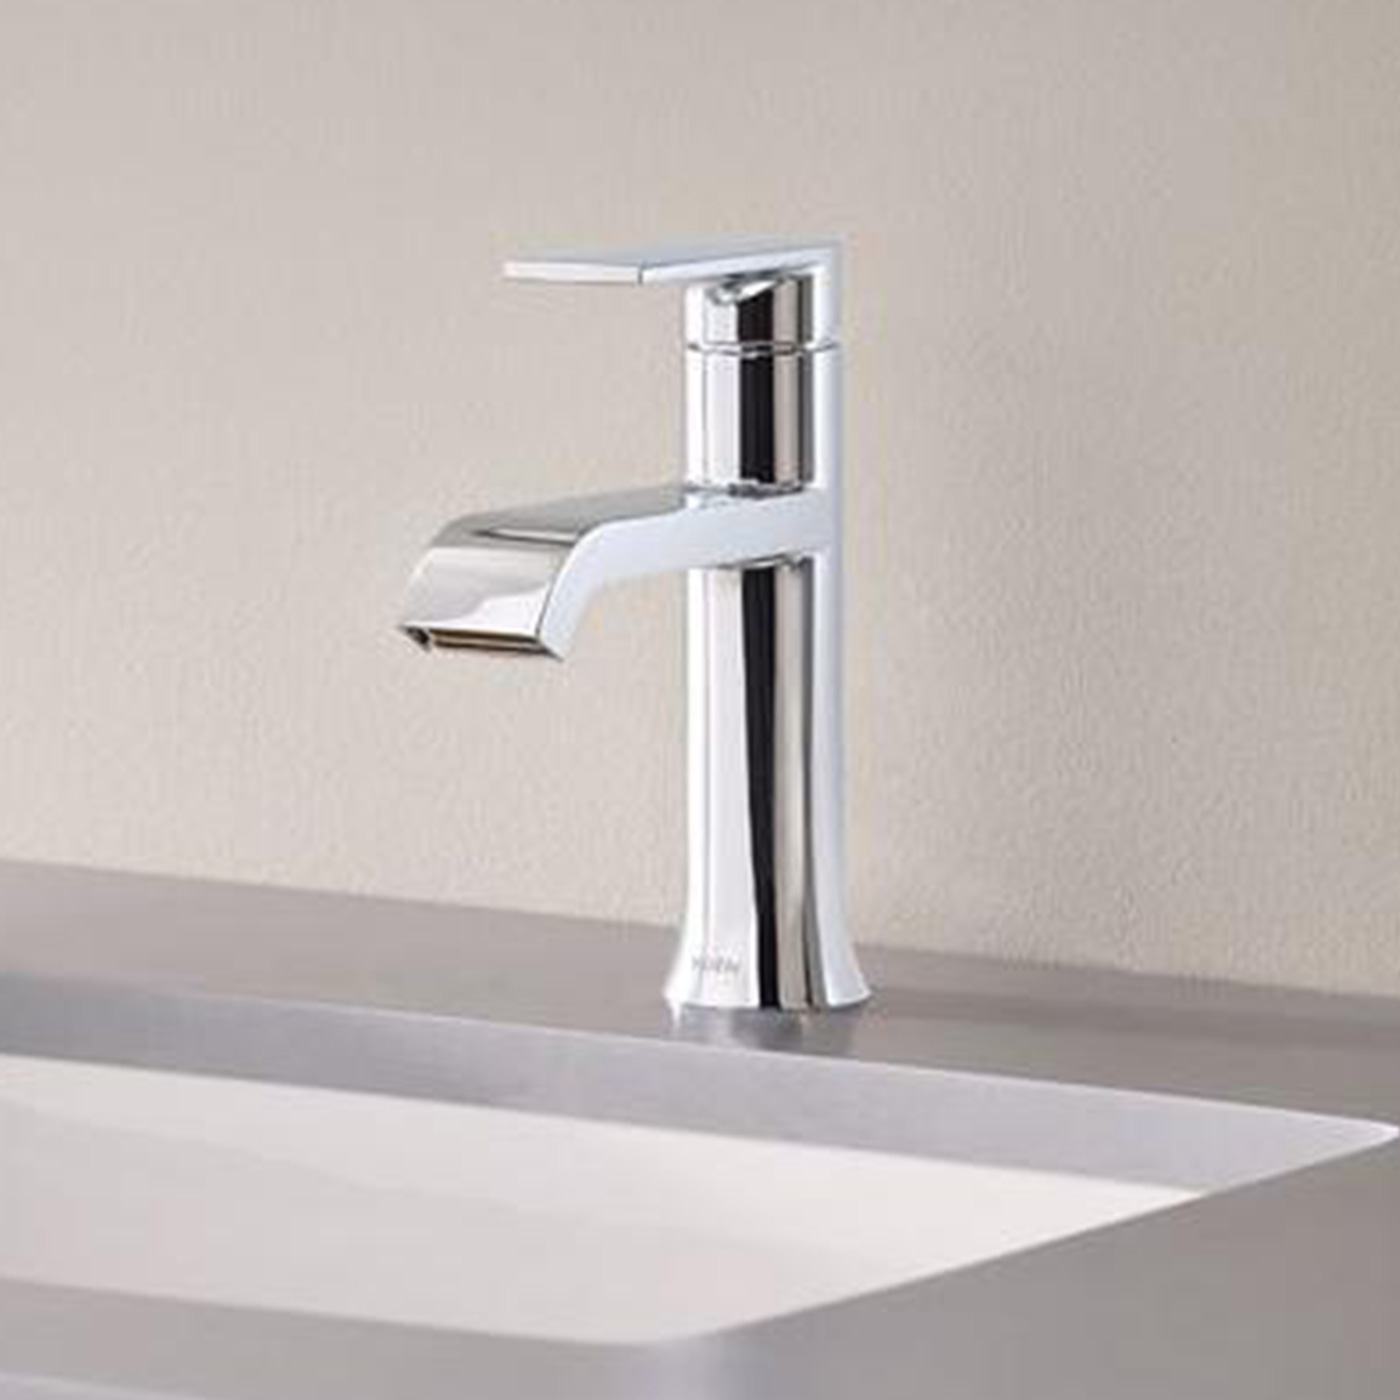 with bathroom bathtub delta design faucet always you break lahara lavatory should technology rules article handle single dst inspiredliving